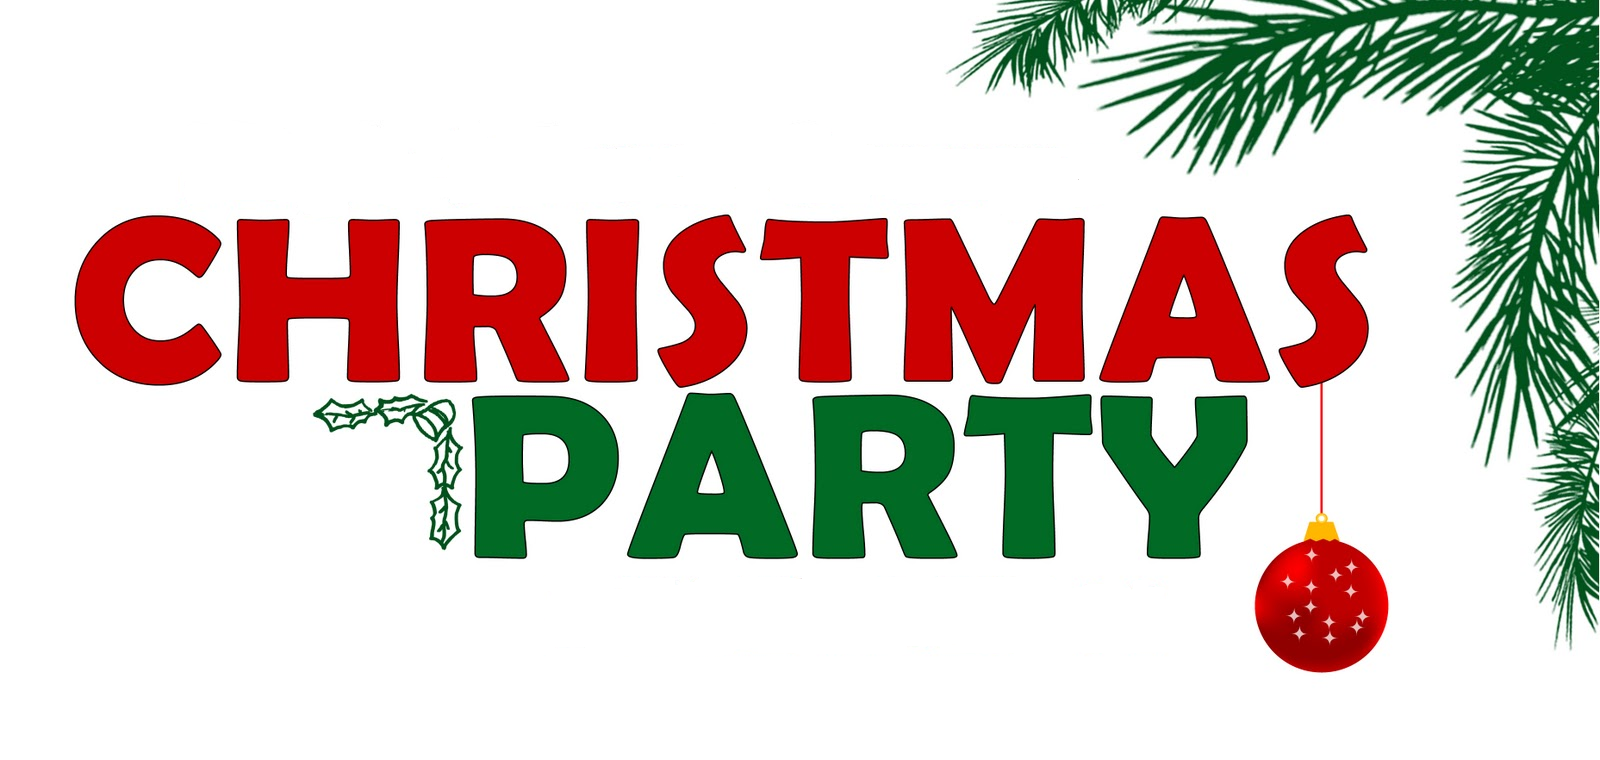 longy christmas party  u2013 save the date  9  12  17